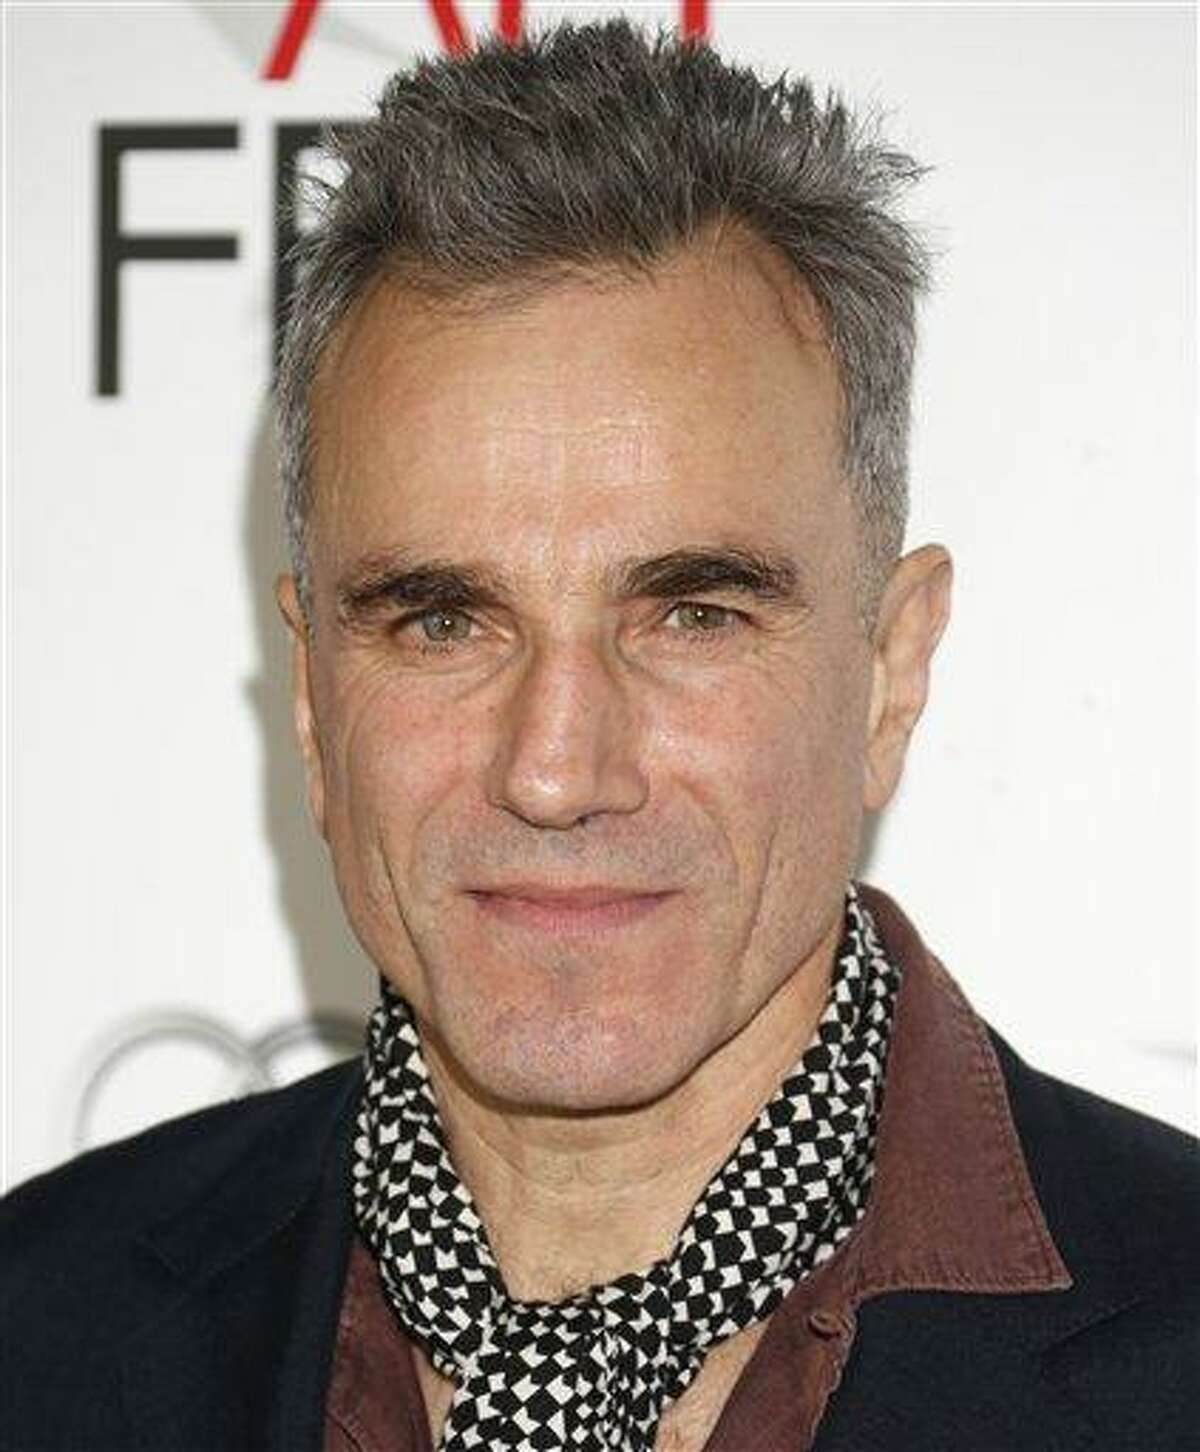 Daniel Day-Lewis arrives at the